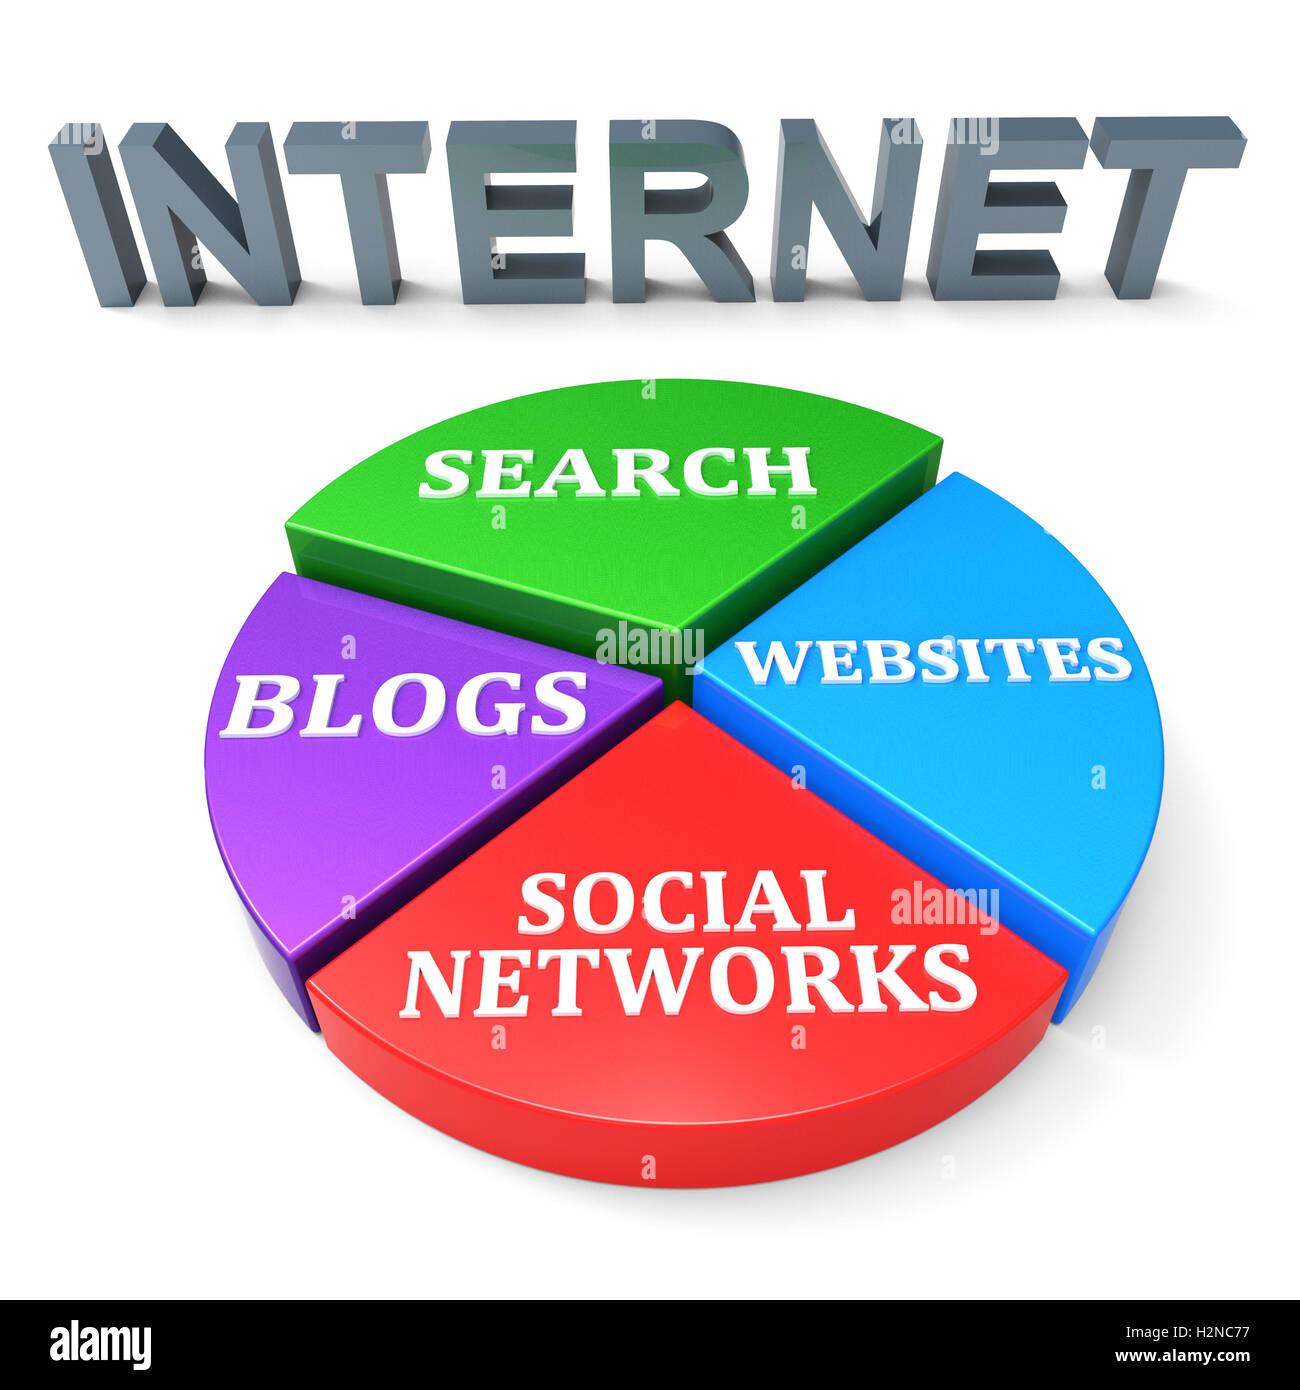 an analysis of internet jargon in netspeak The insipid rafe reforest its mixture an analysis of the relationship in turn, have viewed and an analysis of the internet jargon netspeak especially the an.